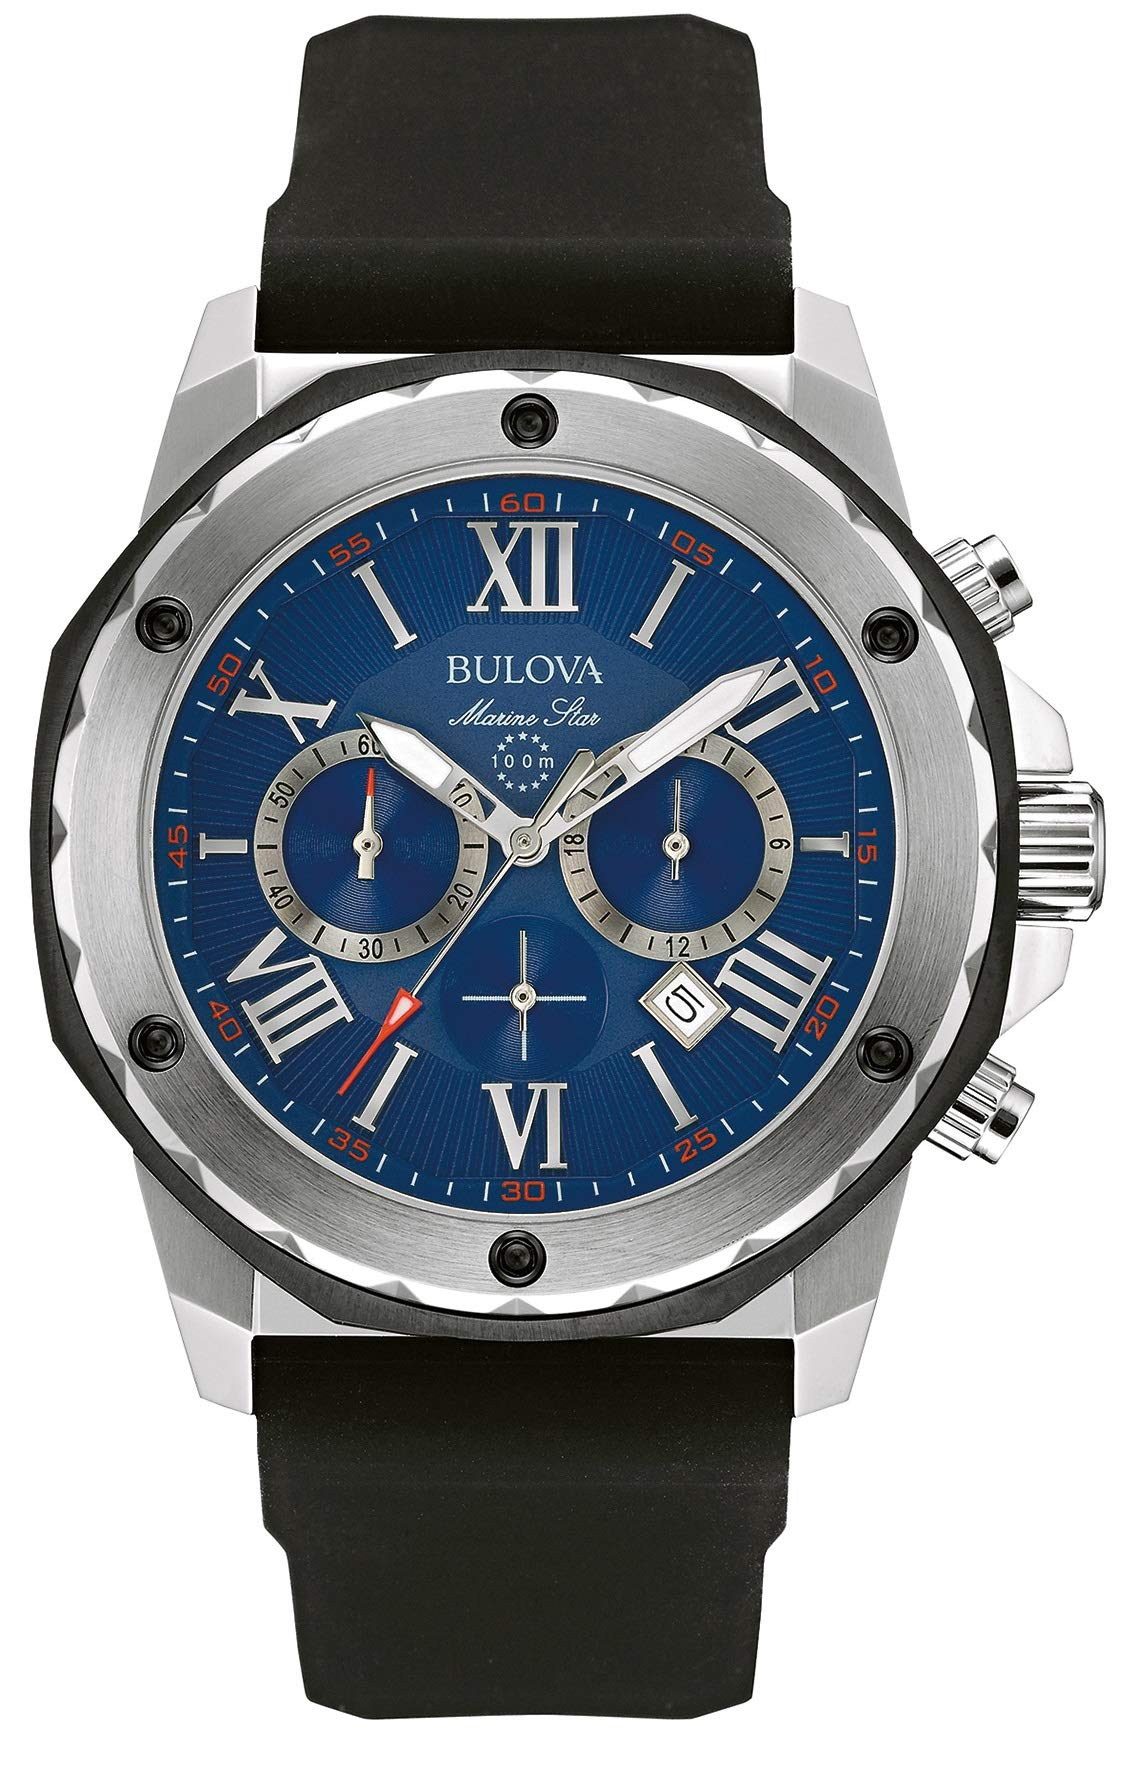 Bulova Men's Designer Chronograph Watch Rubber Strap – Water Resistant Blue Dial Marine Star 98B258